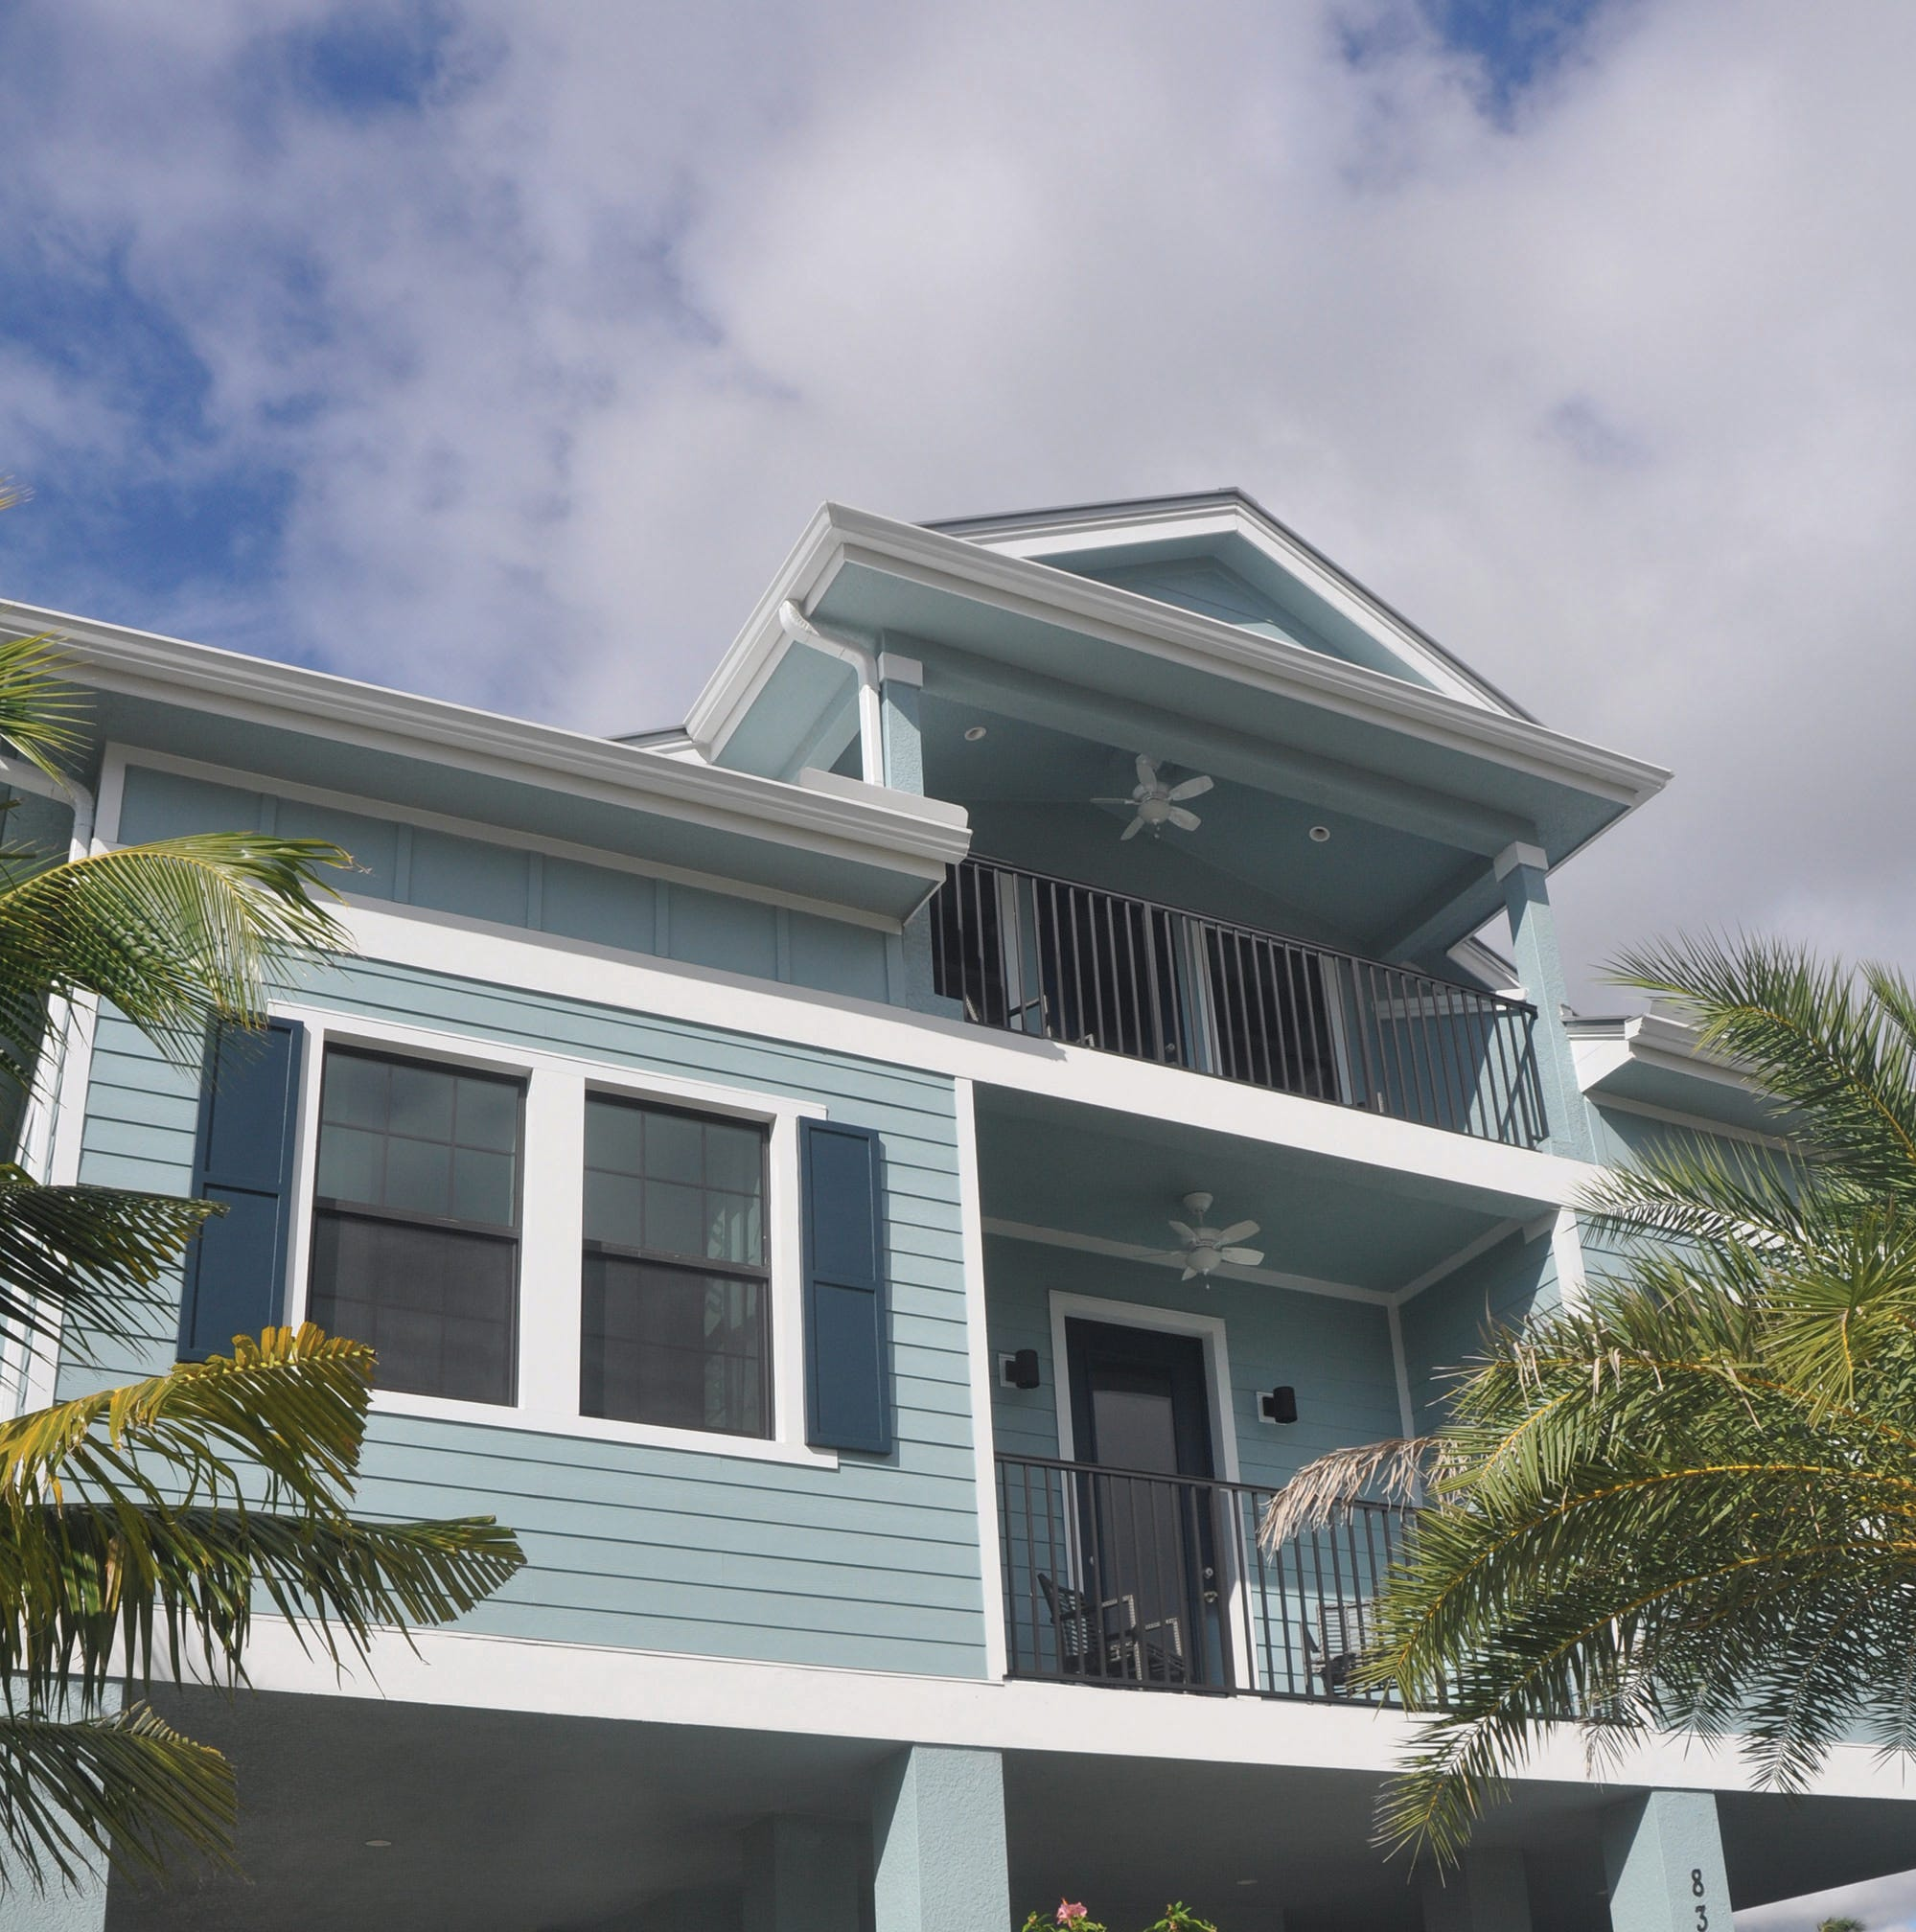 It's all about the beach in this new D.R. Horton home